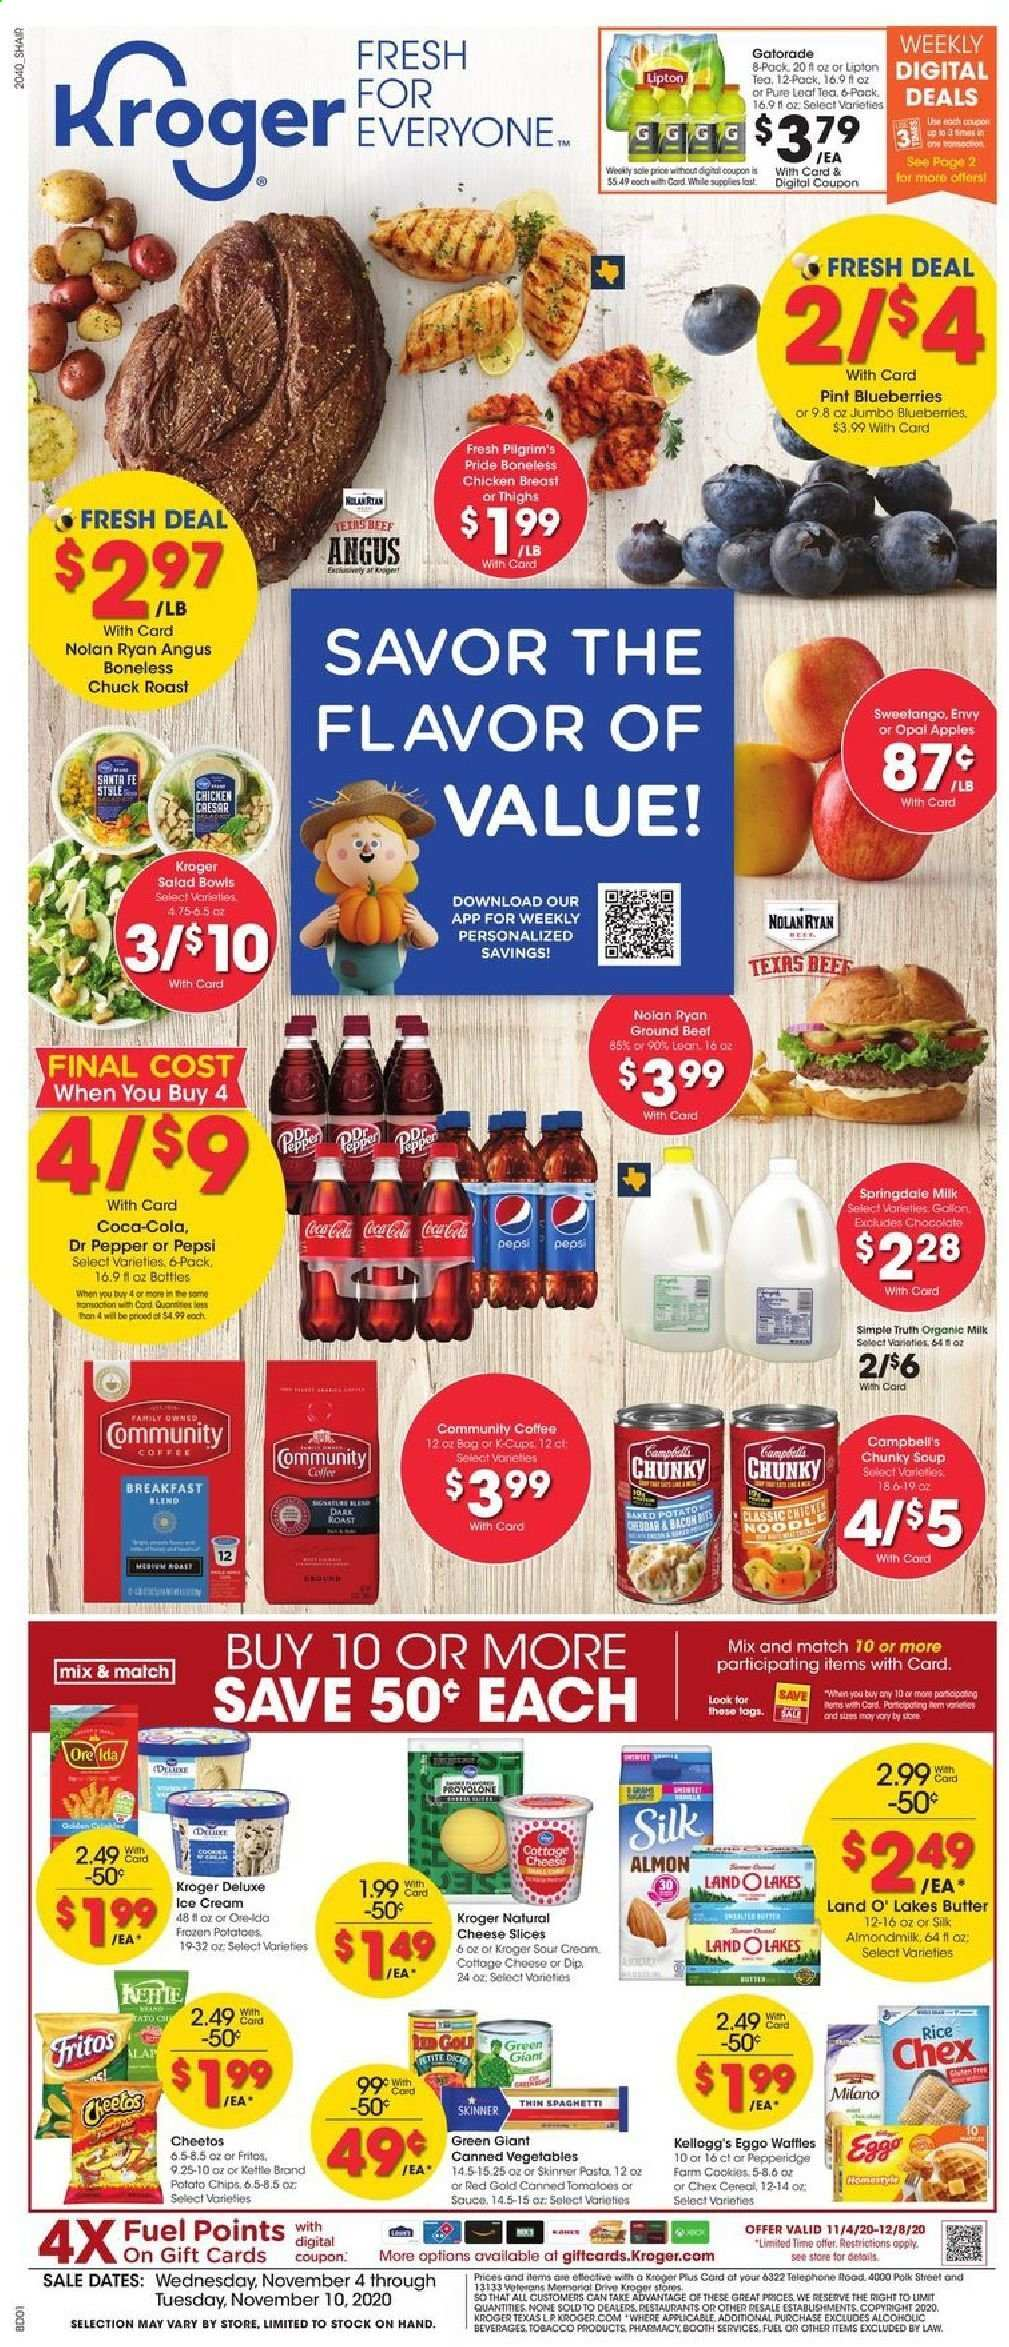 Kroger Flyer - 11.04.2020 - 11.10.2020 - Sales products - apples, bacon, beef meat, blueberries, bowl, butter, campbell's, cereals, coca-cola, coffee, cottage cheese, dates, fritos, frozen, fuel, ground beef, milk, rice, santa, sole, sour cream, spaghetti, tea, ice cream, polk, potato chips, potatoes, provolone, cheddar, cheese slices, cheetos, chicken, chicken breast, pepsi, noodle, chips, chocolate, cheese, soup, canned vegetables, vegetables, pepper, cereal, pasta, lipton, salad, sauce, roast, apple, kettle, vegetable. Page 1.